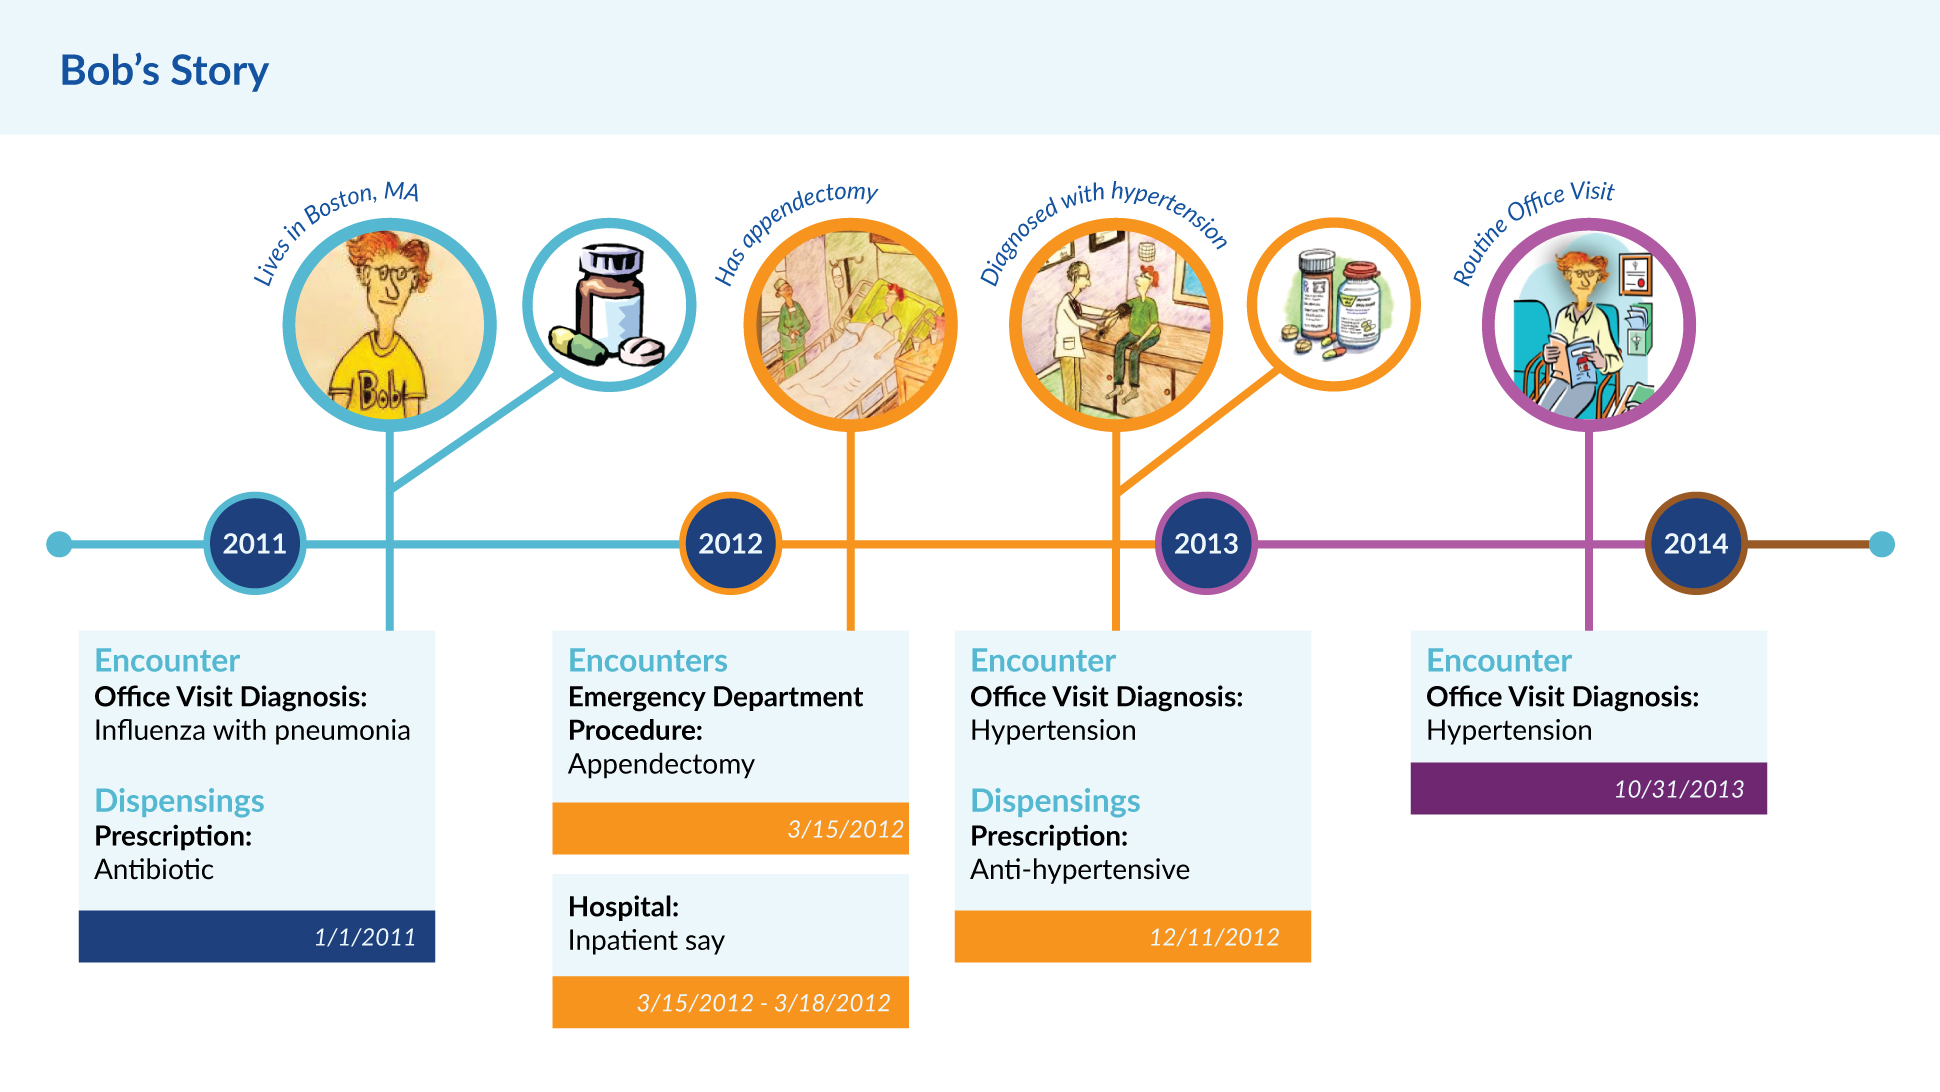 A graphic depicting a fictitious male patient, Bob, who is  enrolled in a health plan, and the variety of medical encounters he experienced between 2011 and 2014.